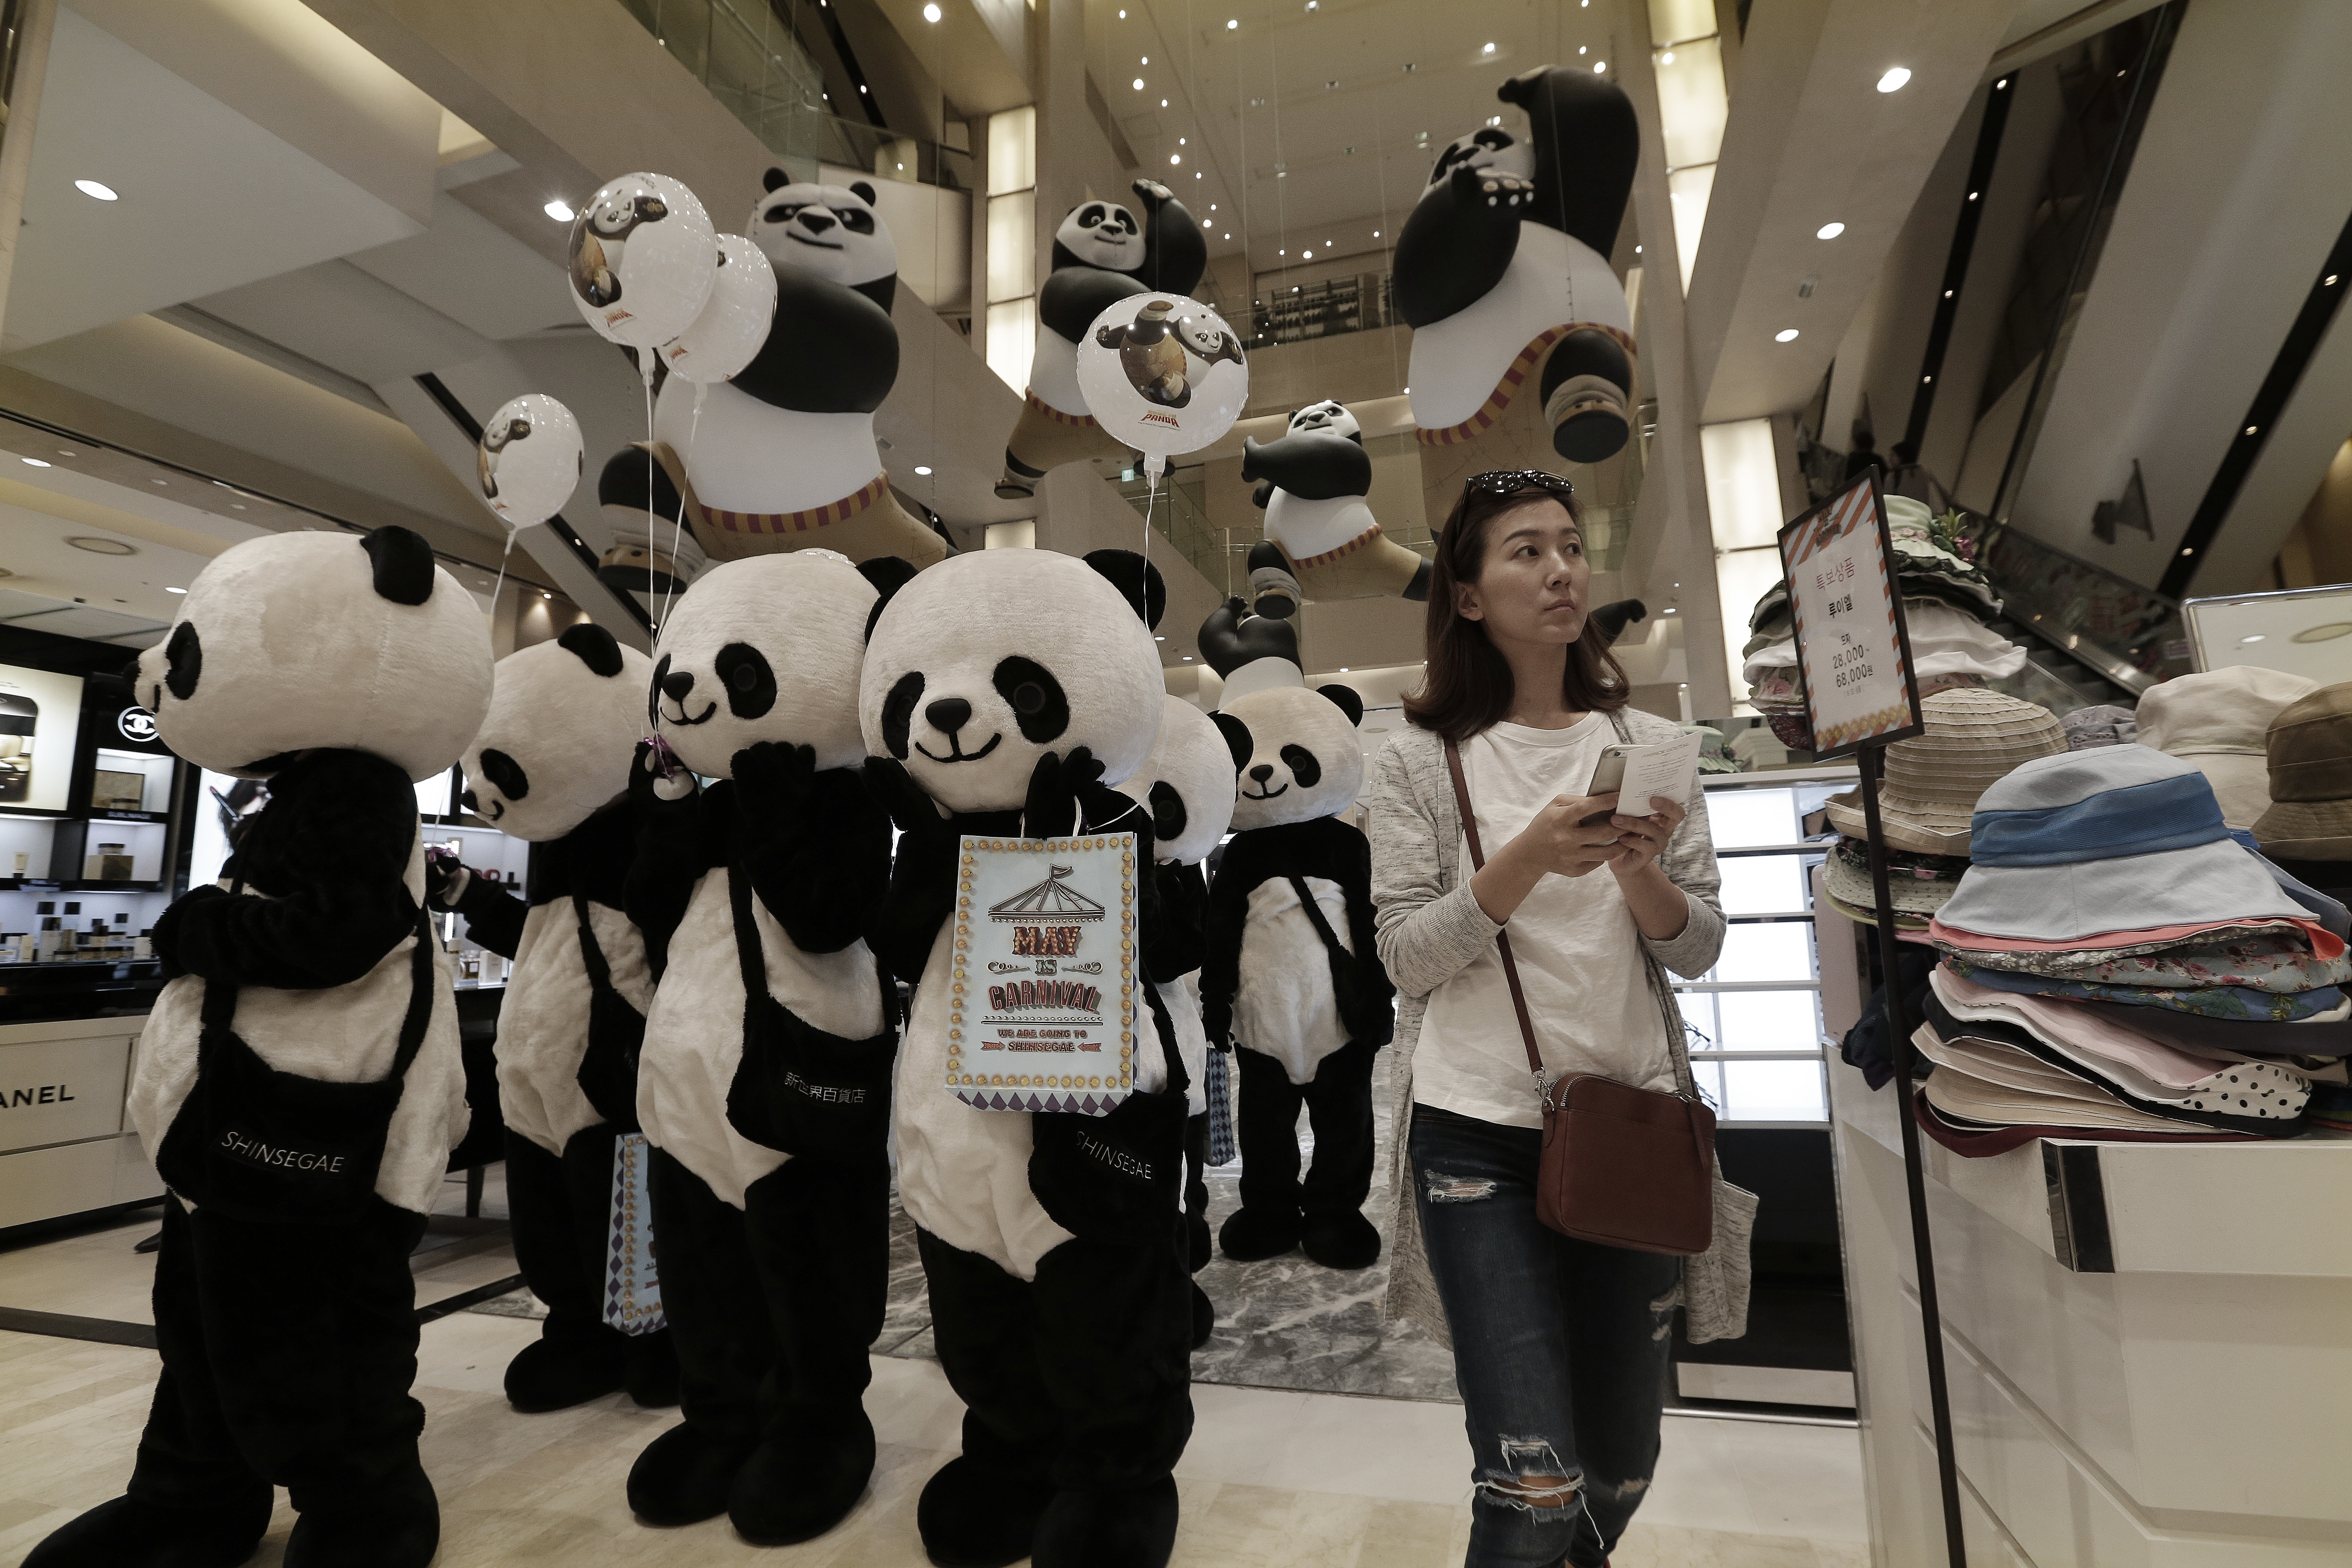 Workers wearing panda costumes attend a promotion event for Chinese tourists at a department store in Seoul, South Korea, Thursday, April 28, 2016.